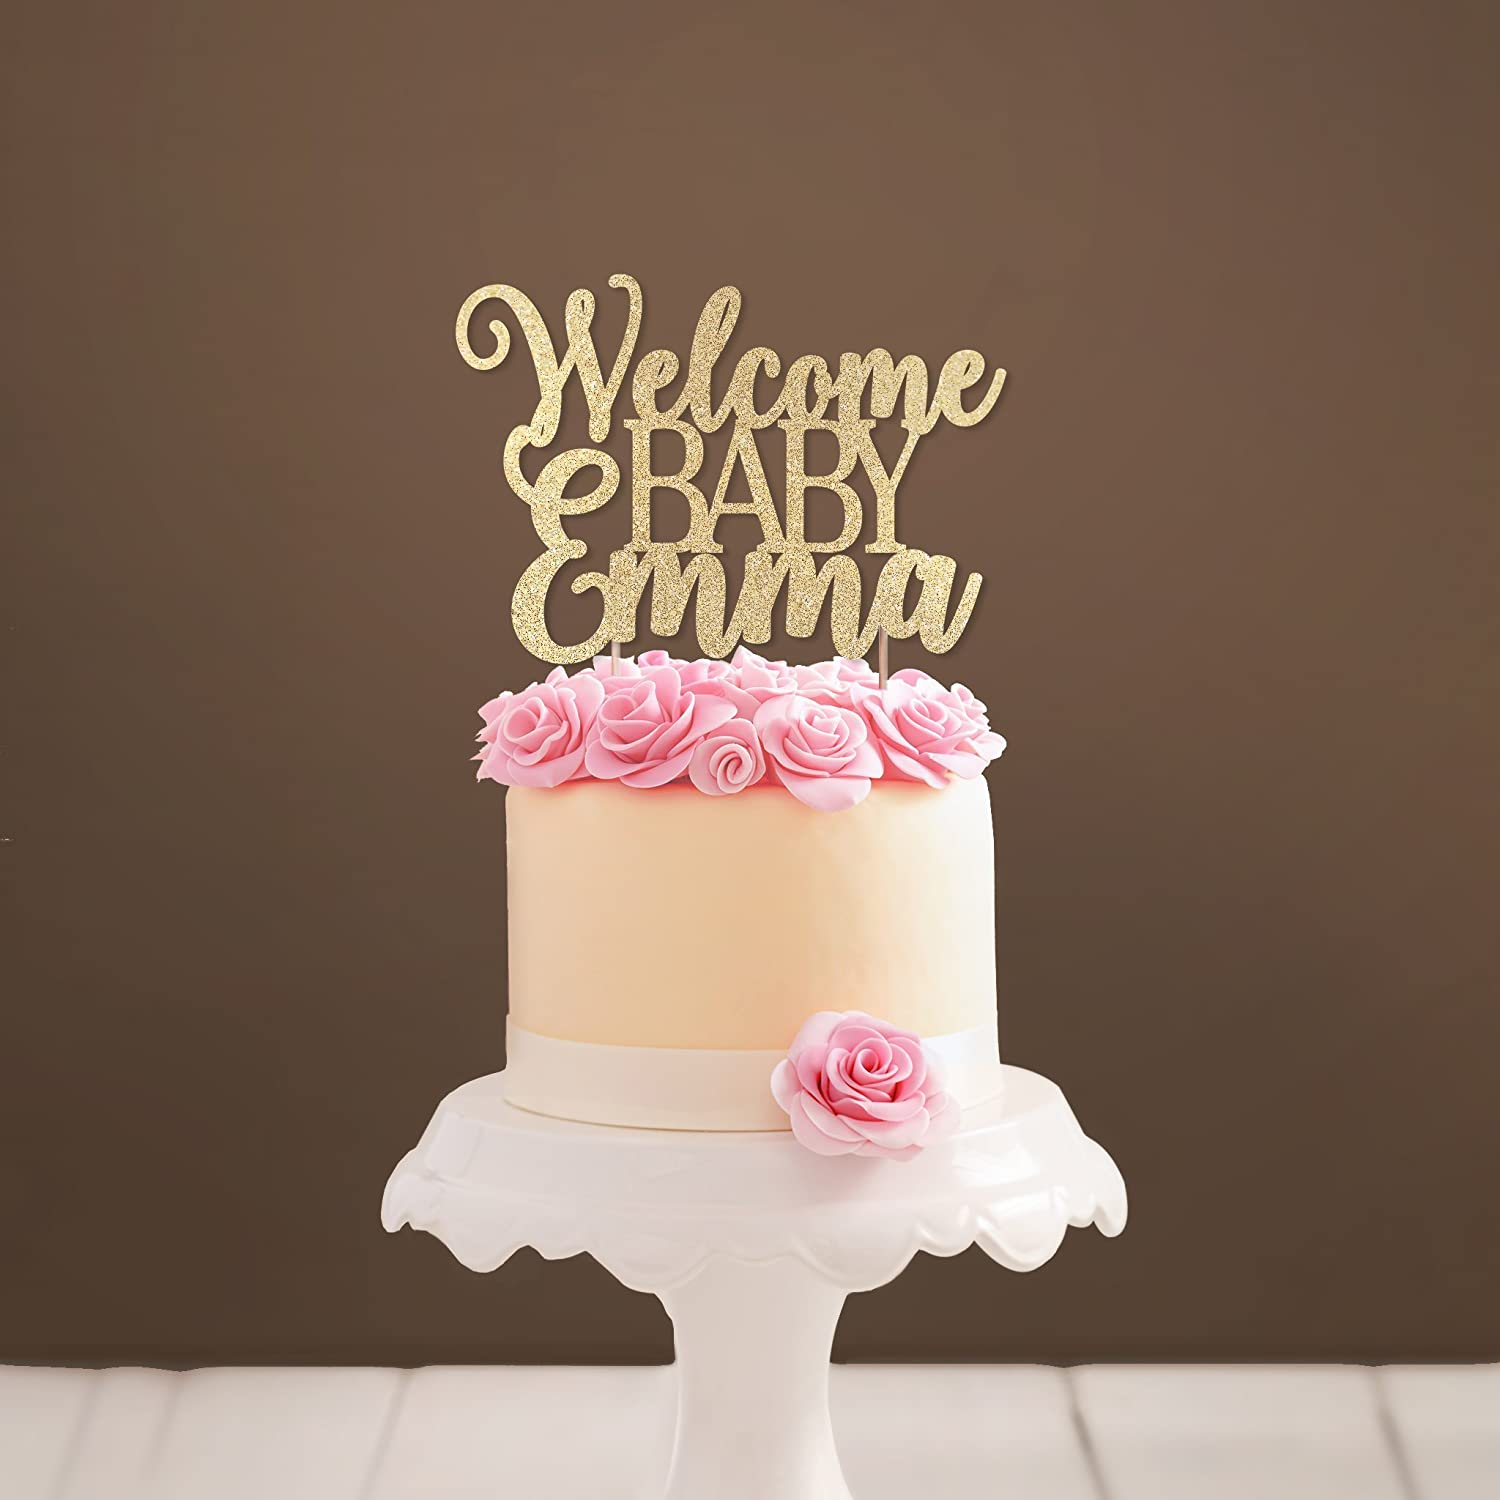 Custom Welcome Baby Cake Topper Glittery Baby Shower Cake Topper Girl Baby Shower Party Decoration Baby Boy Shower Cake Topper